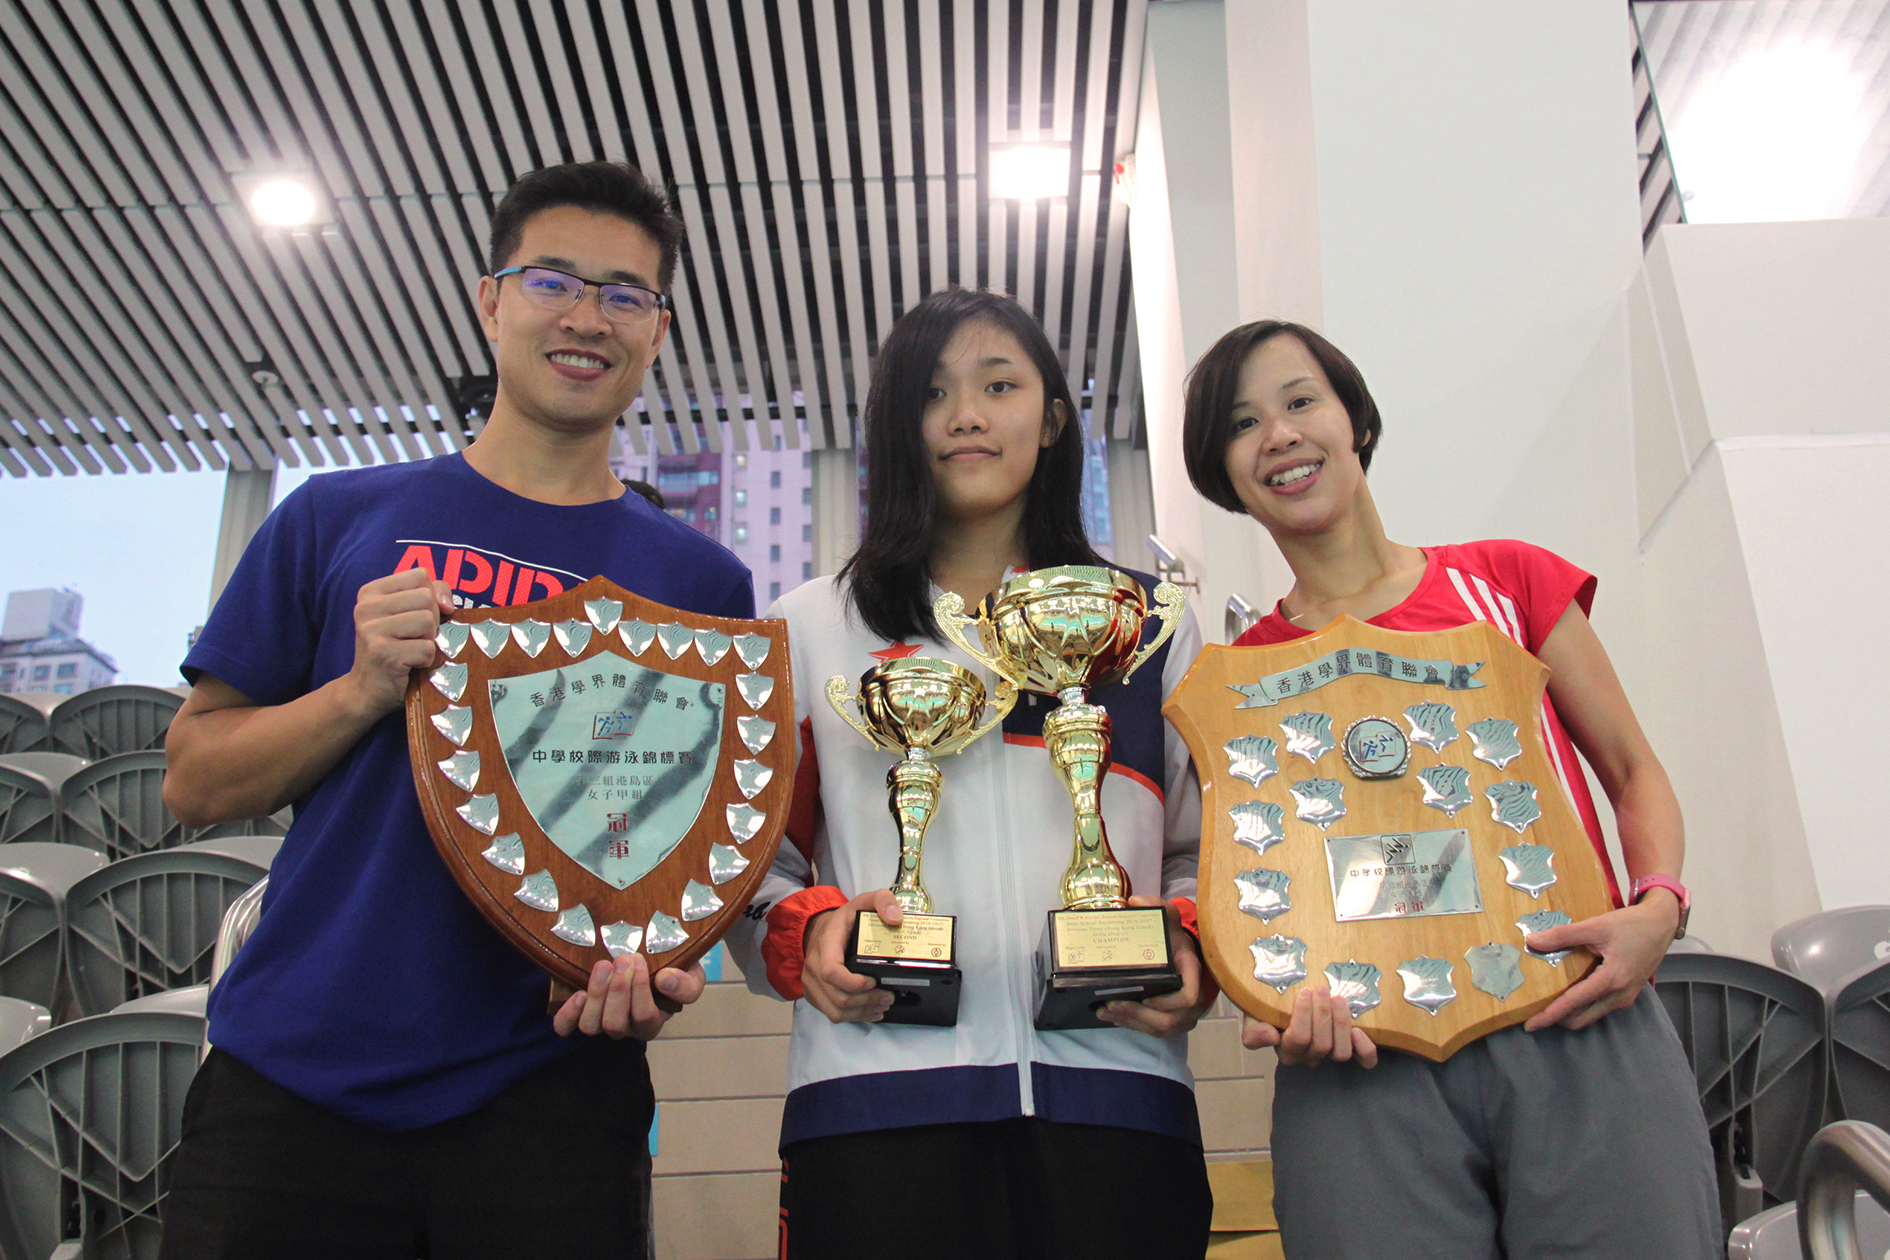 From the left: Mr. Louis Au, Ms. Isabel Lau and Ms. Esther Li.